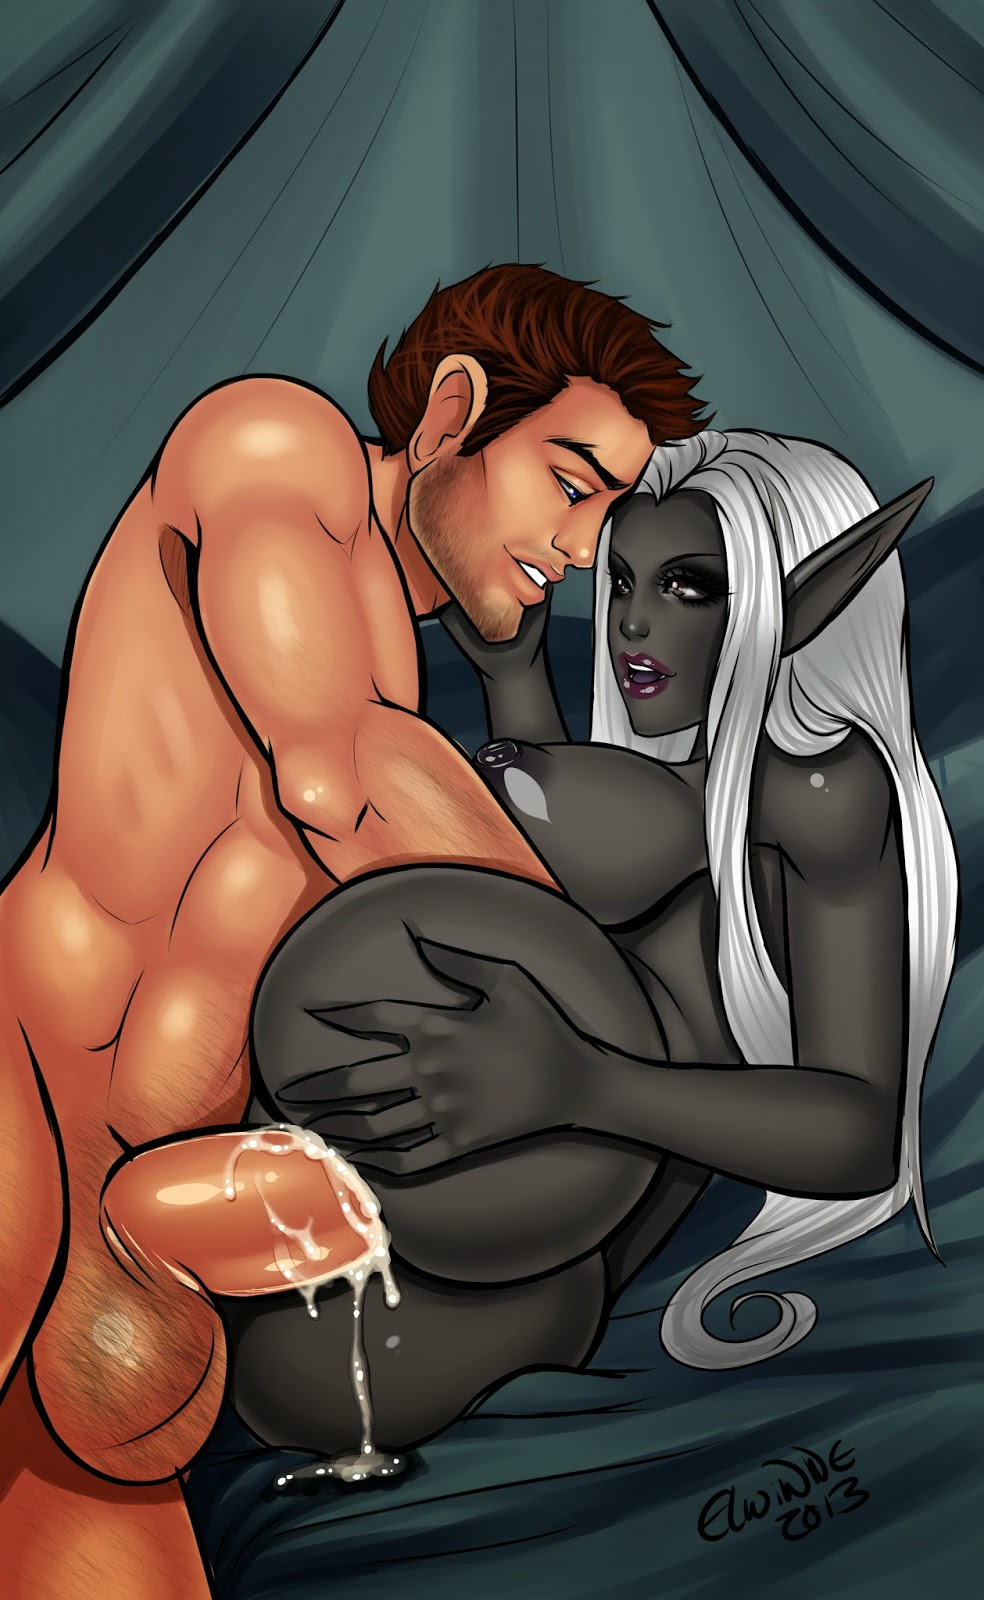 Drow sex videos nude pictures